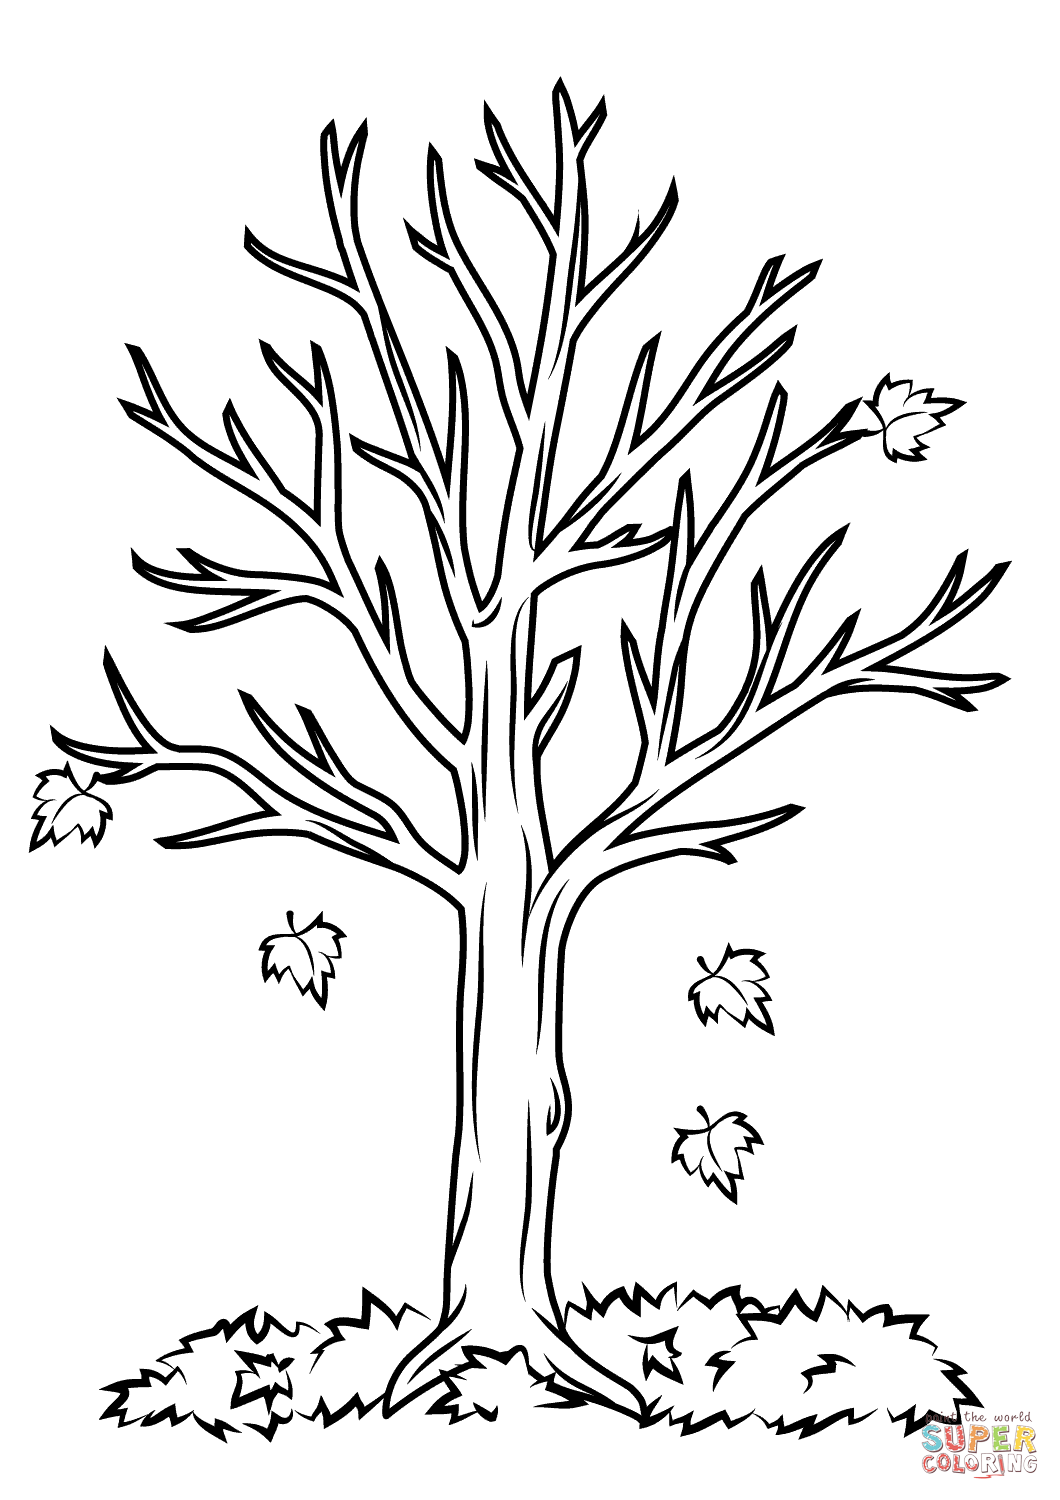 Tree Coloring Pages Free Printable at GetDrawings.com | Free for ...